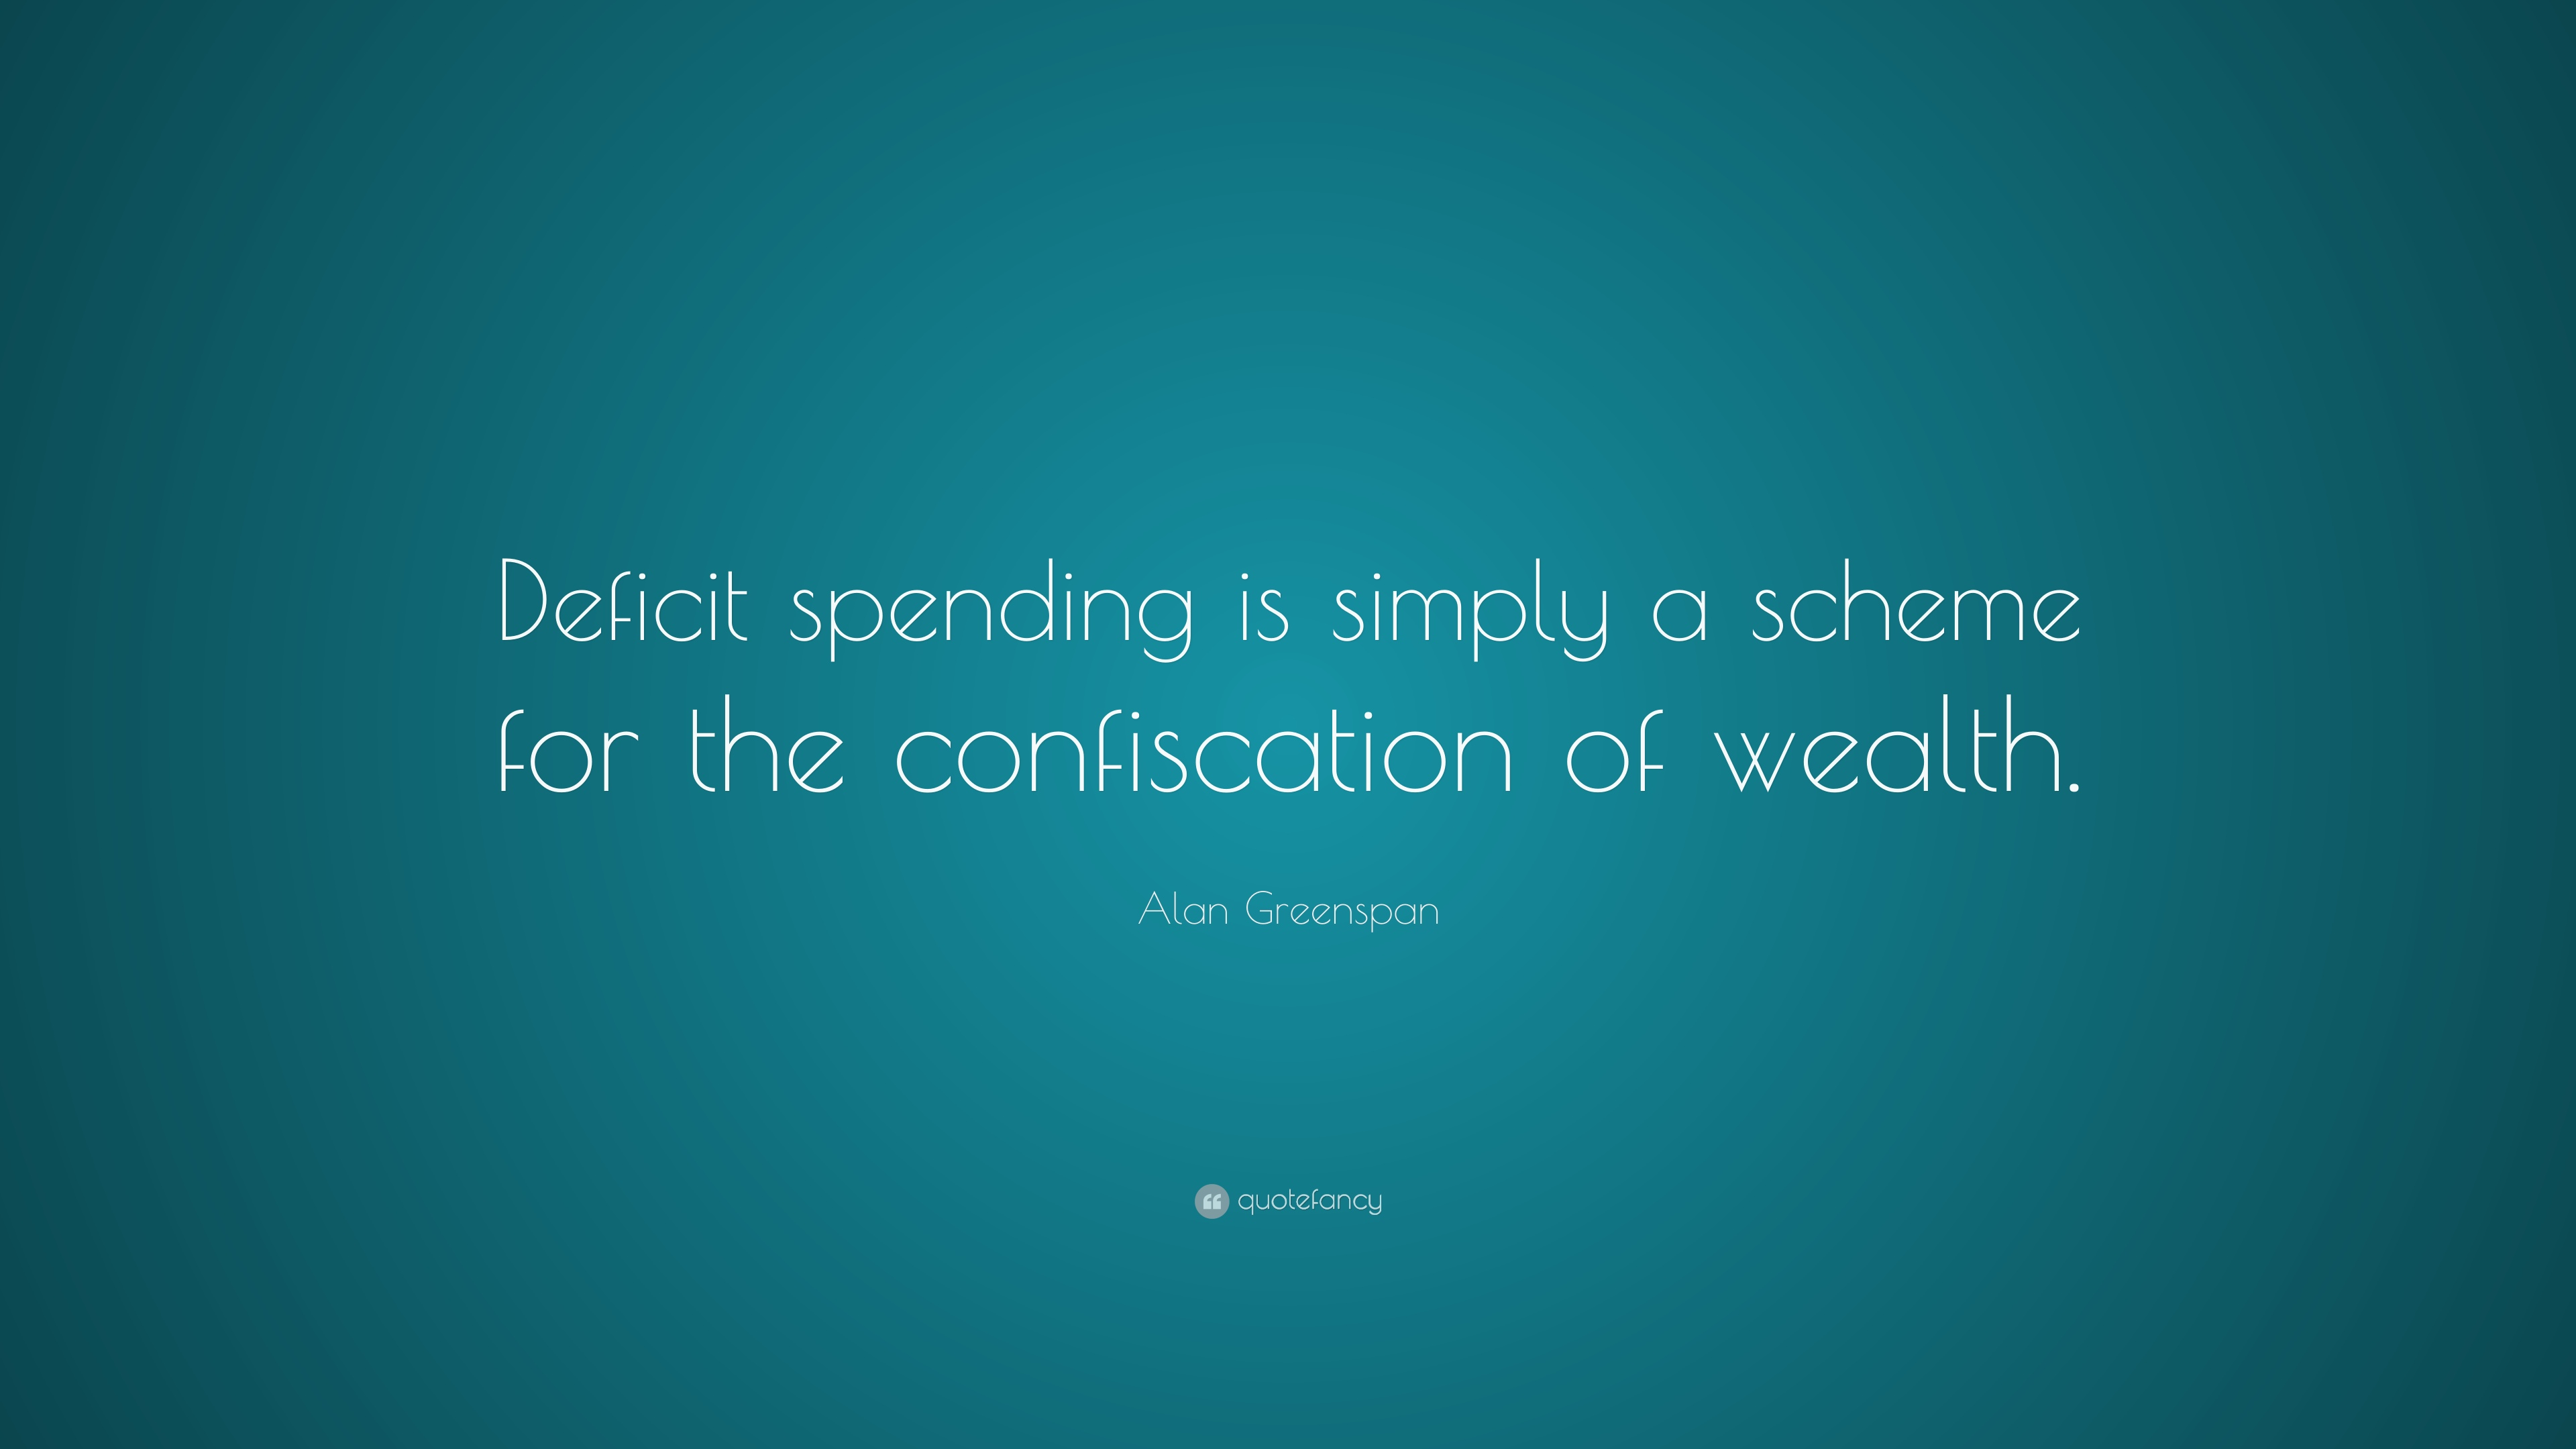 alan greenspan quote deficit spending is simply a scheme for the